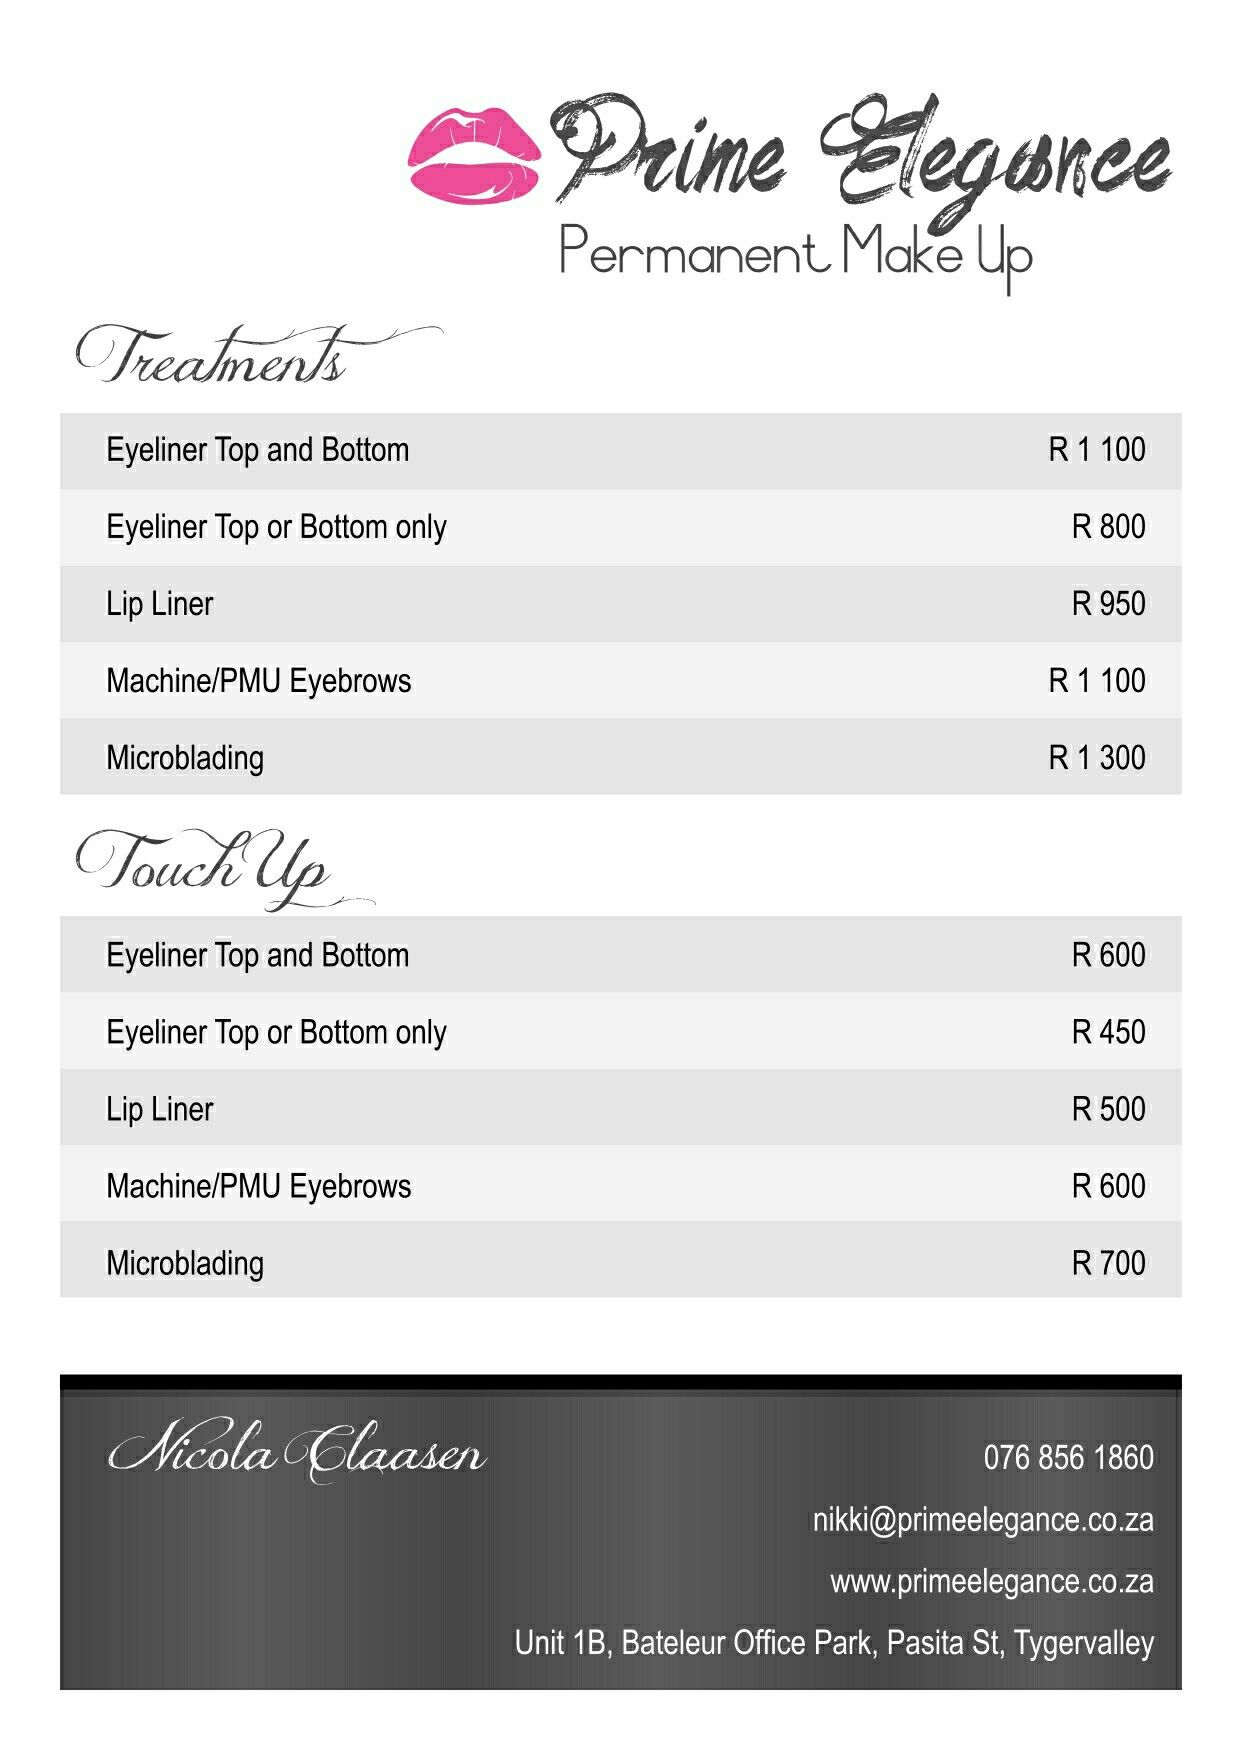 Treatments and prices. Lip liner, Microblading, Liner